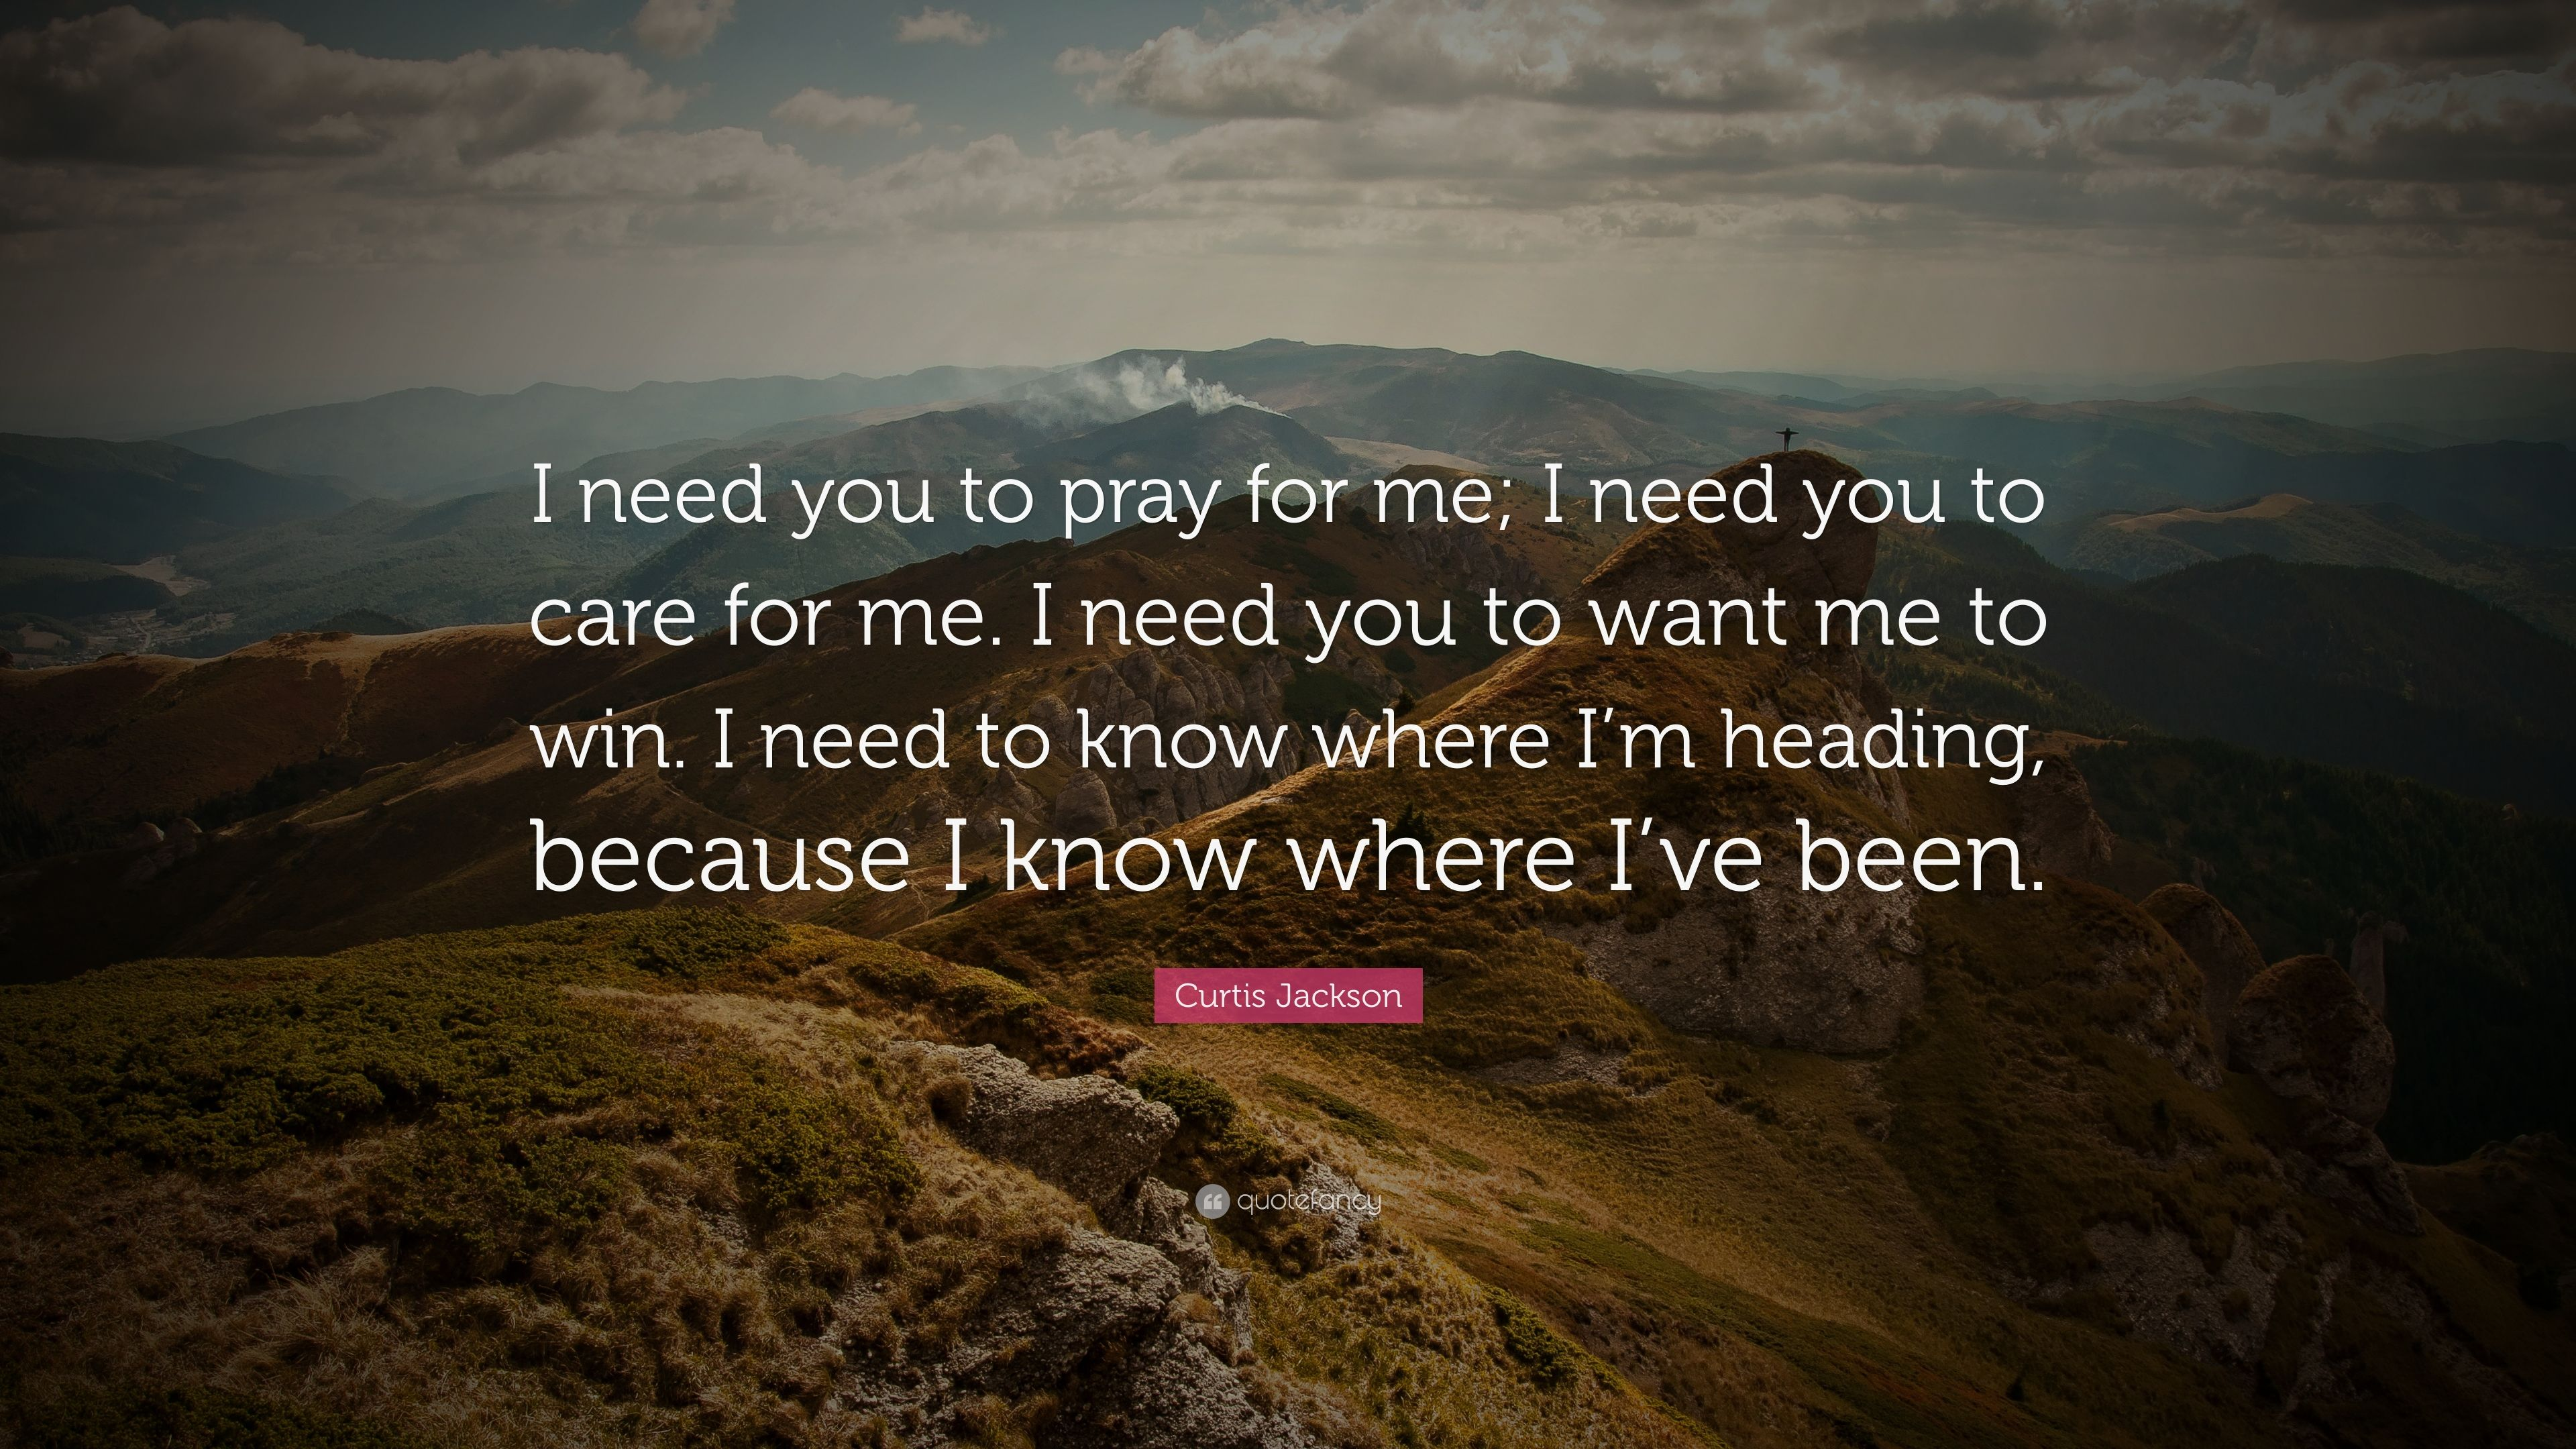 Curtis Jackson Quote I Need You To Pray For Me I Need You To Care